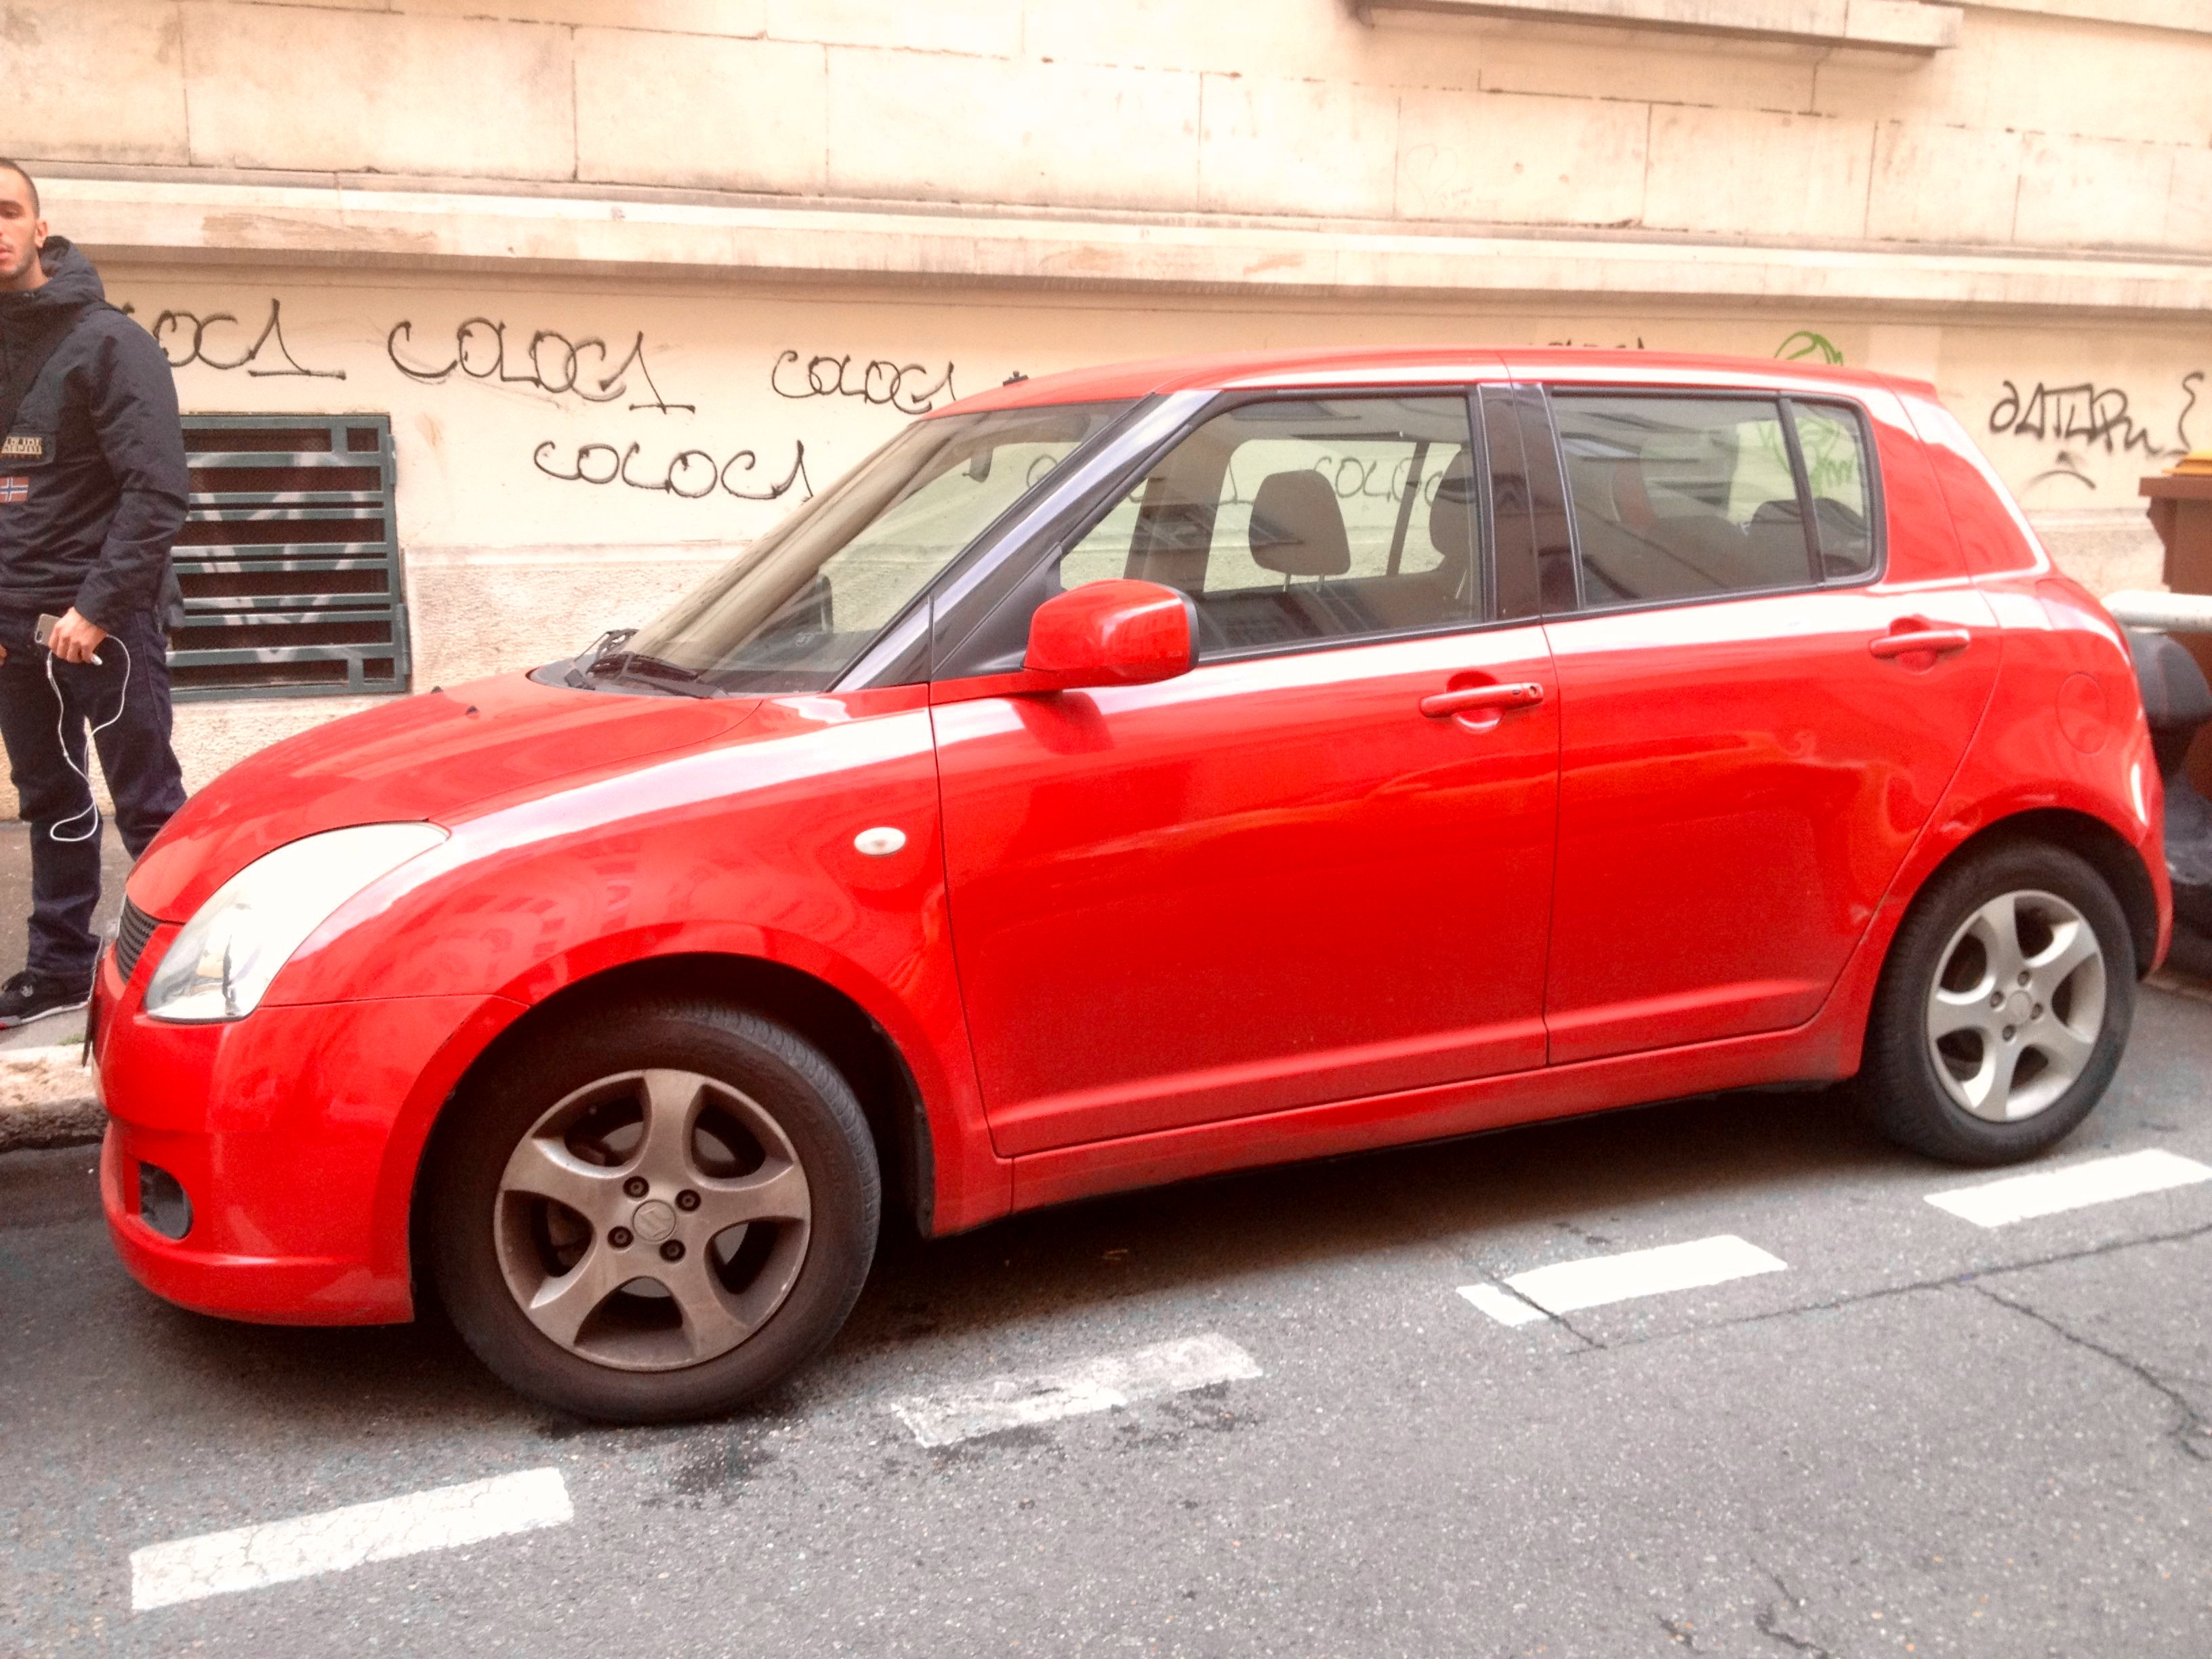 Suzuki swift, 2005, Essence - Citadine Marseille (13)